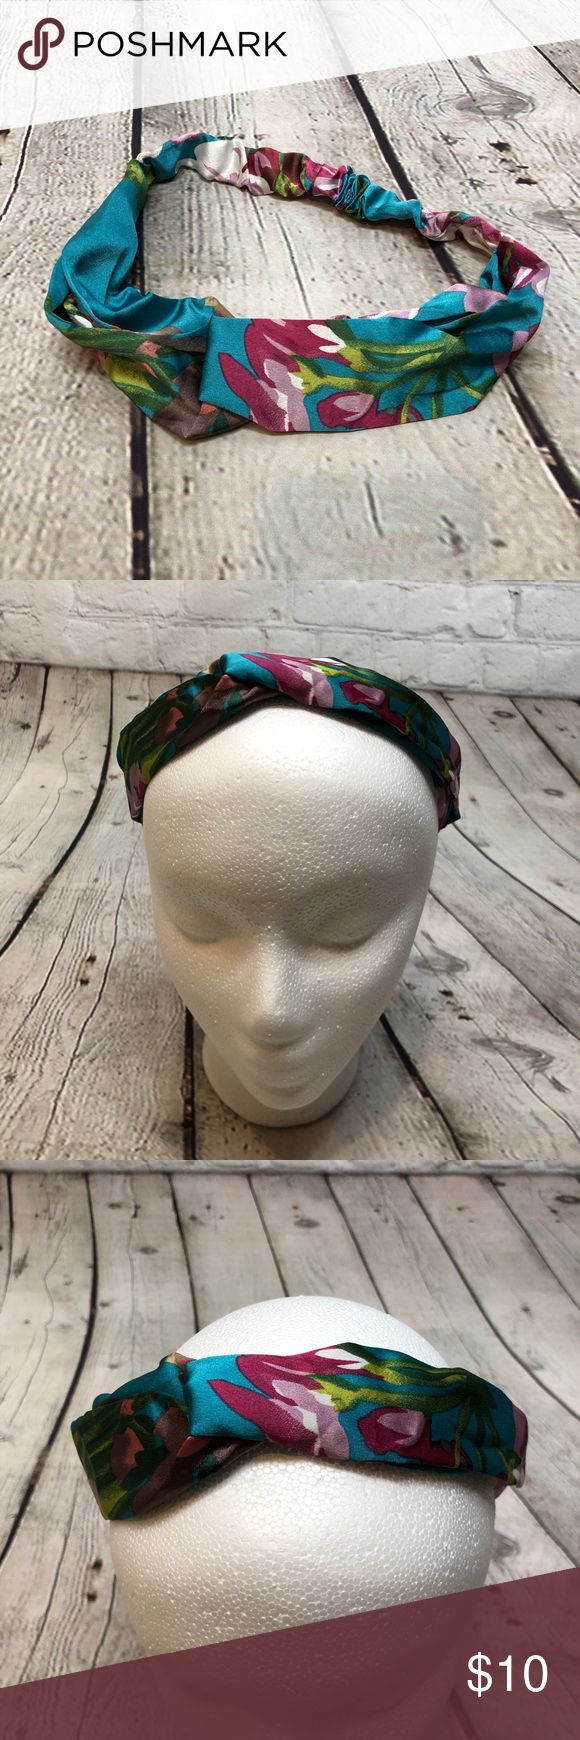 Knotted Boho Headband Teal Floral This knotted headband is super cute. It has elastic inside the fabric and it's stretchy and comfortable. The cross...